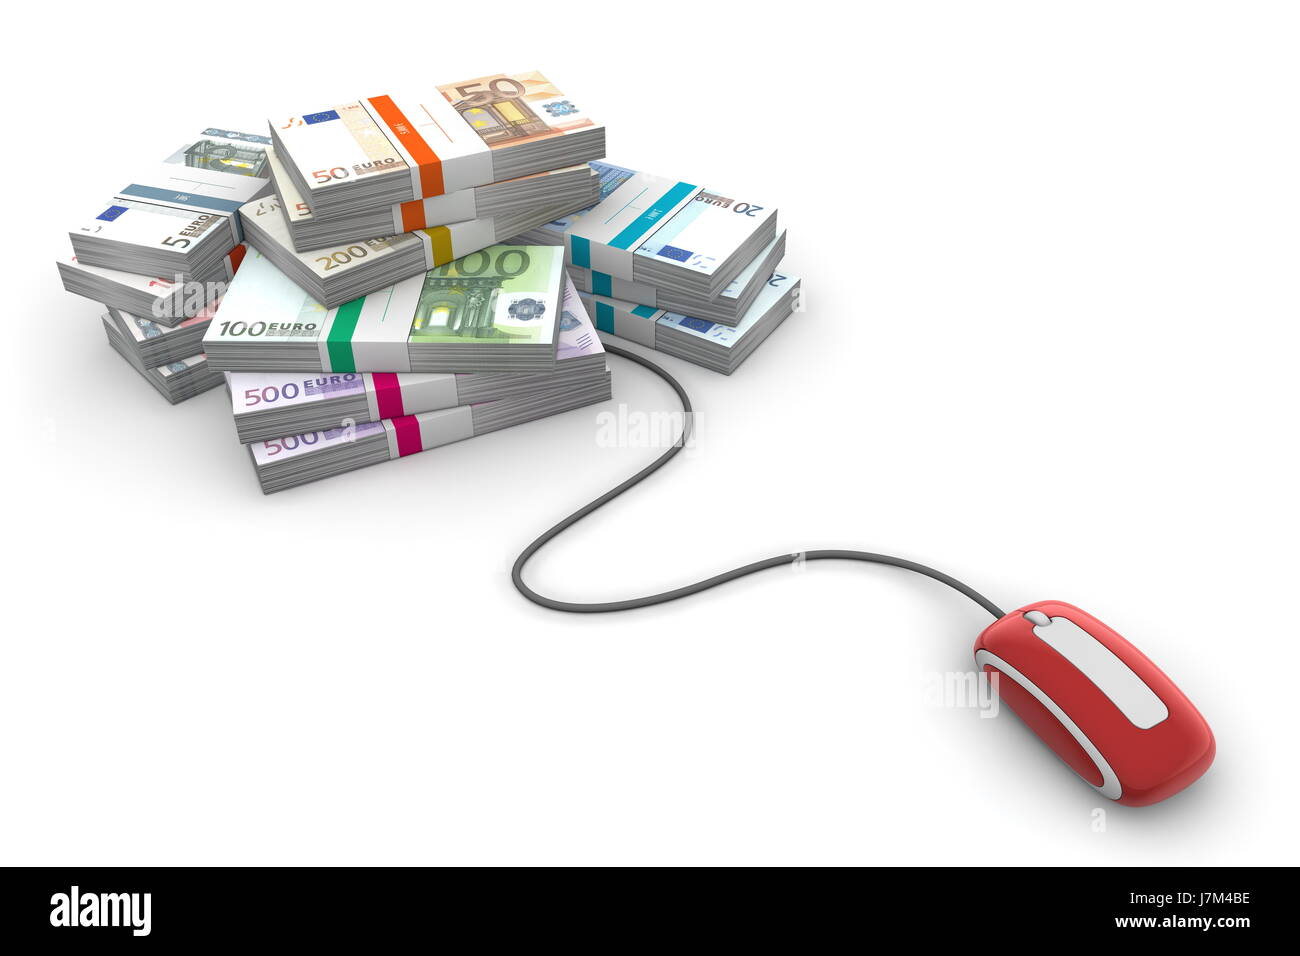 0f297fc1dea currency euro stack mouse computer mouse heap pile red money online bank